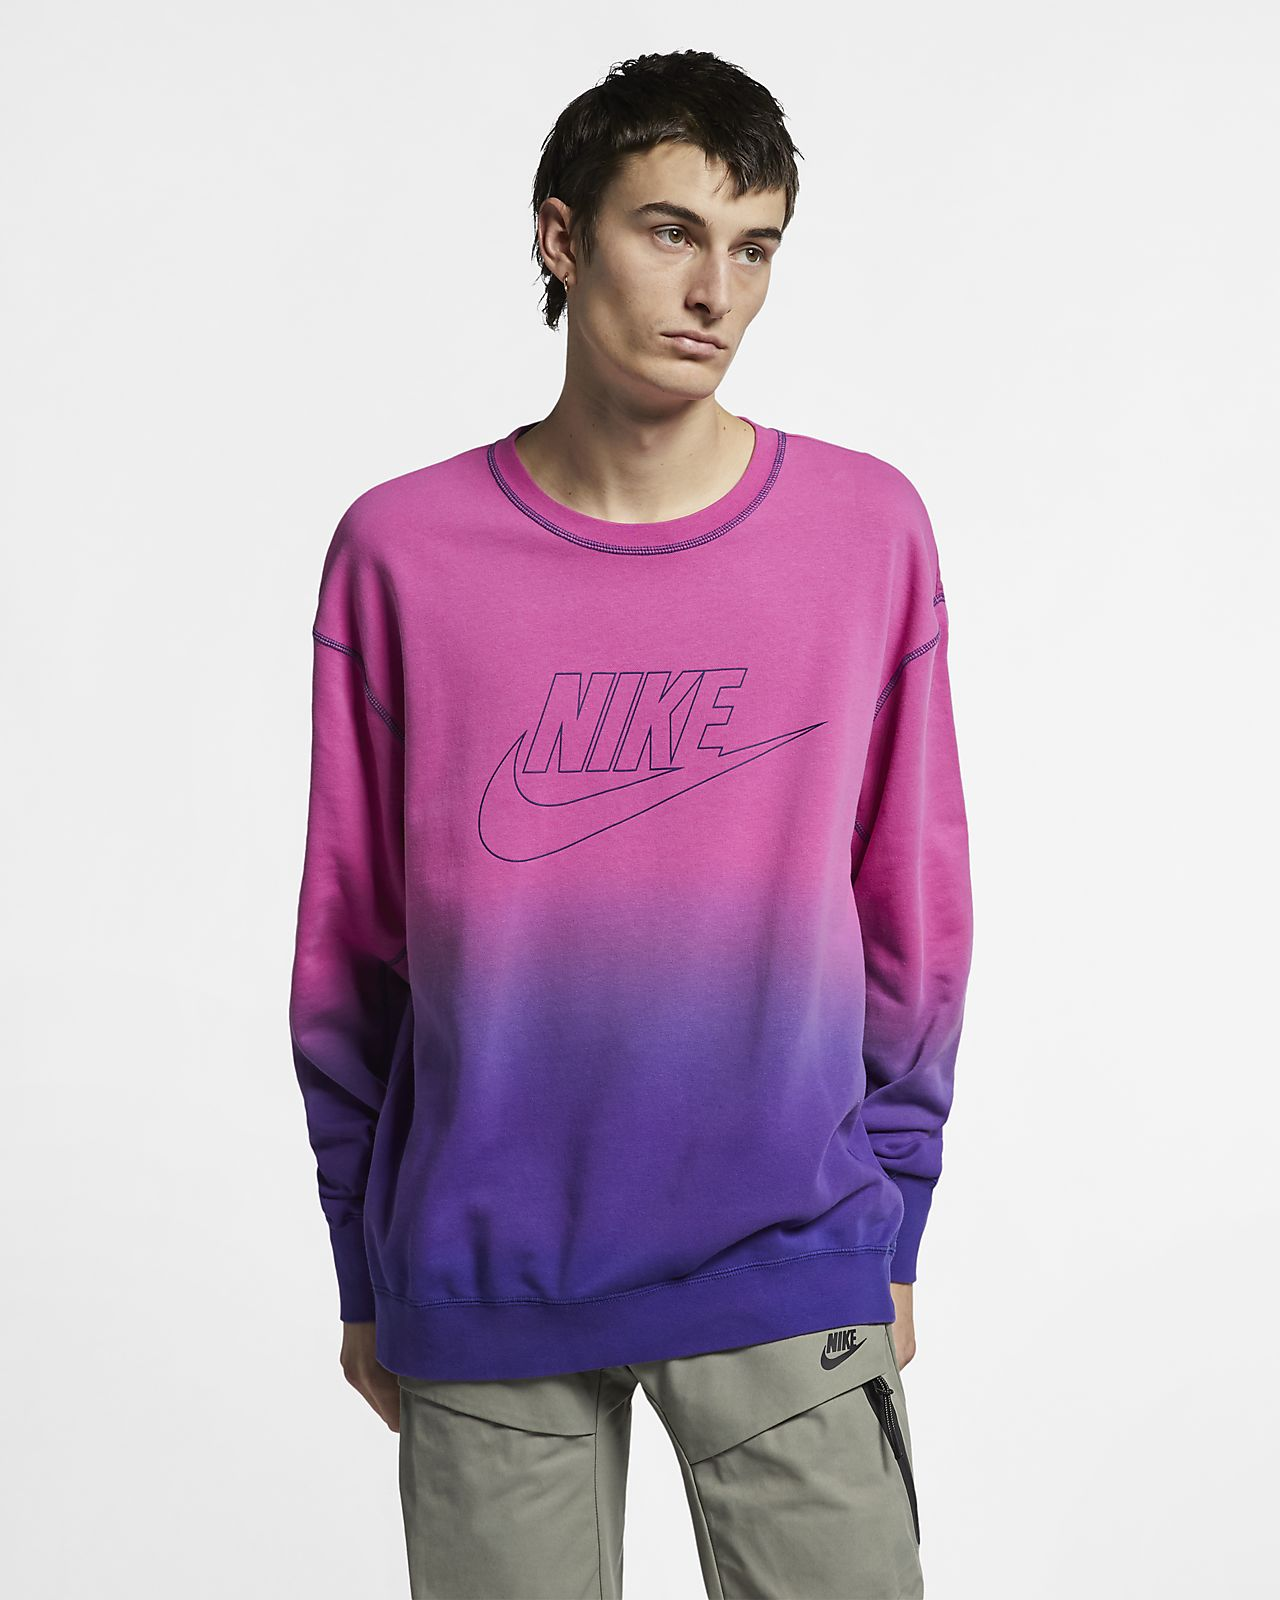 492a4969 Nike Sportswear Men's French Terry Crew. Nike.com